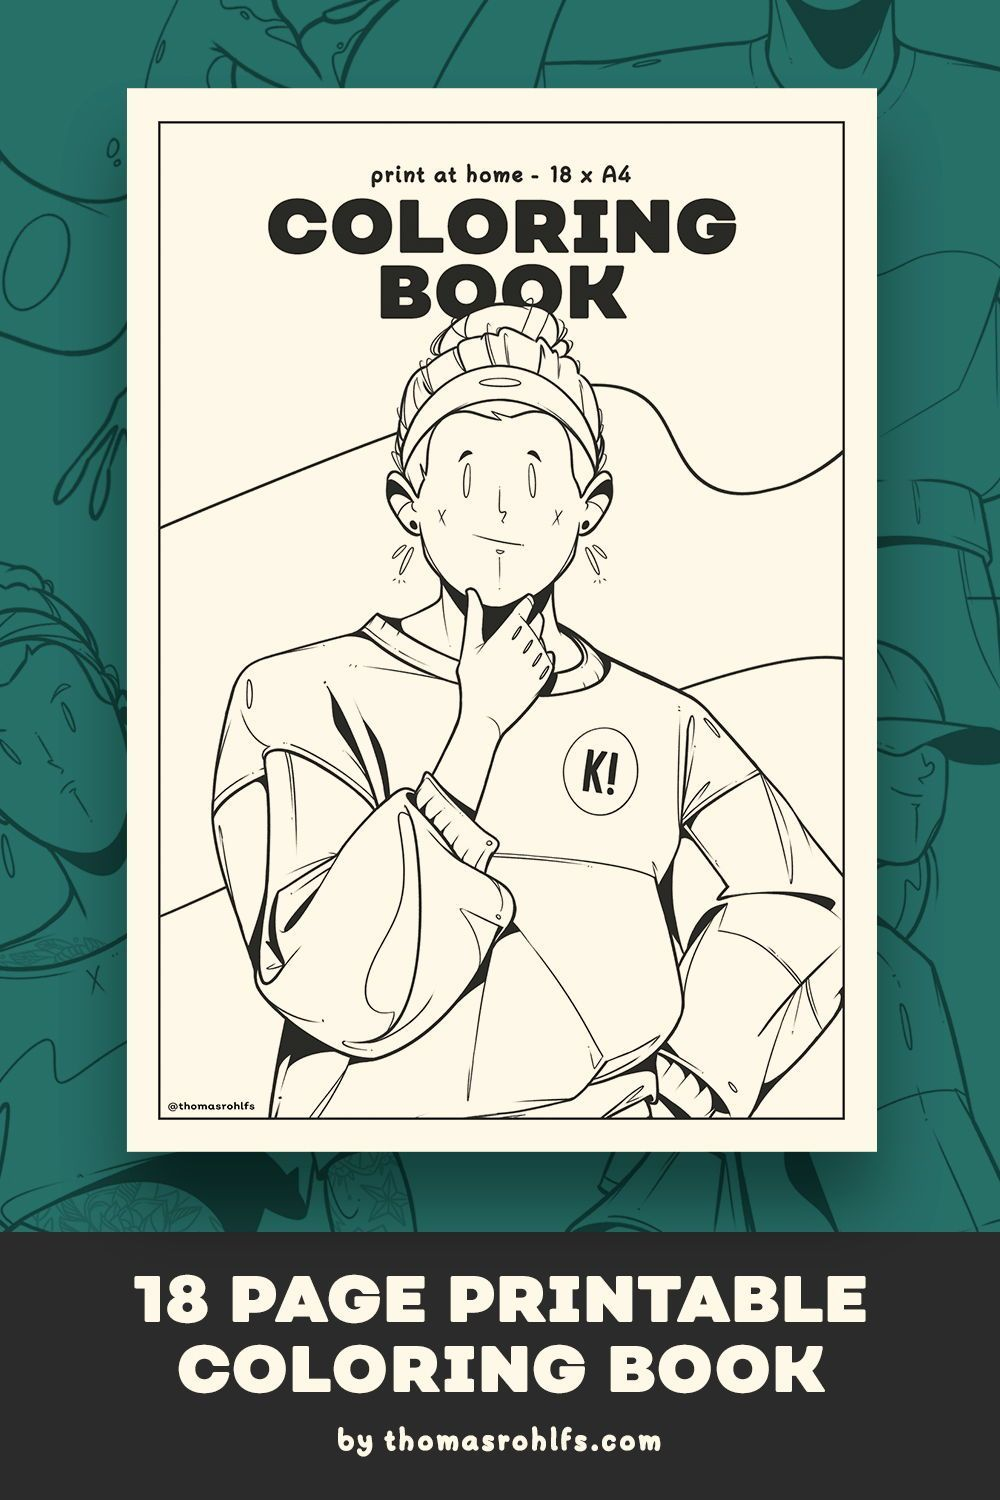 18 Page Printable Coloring Book